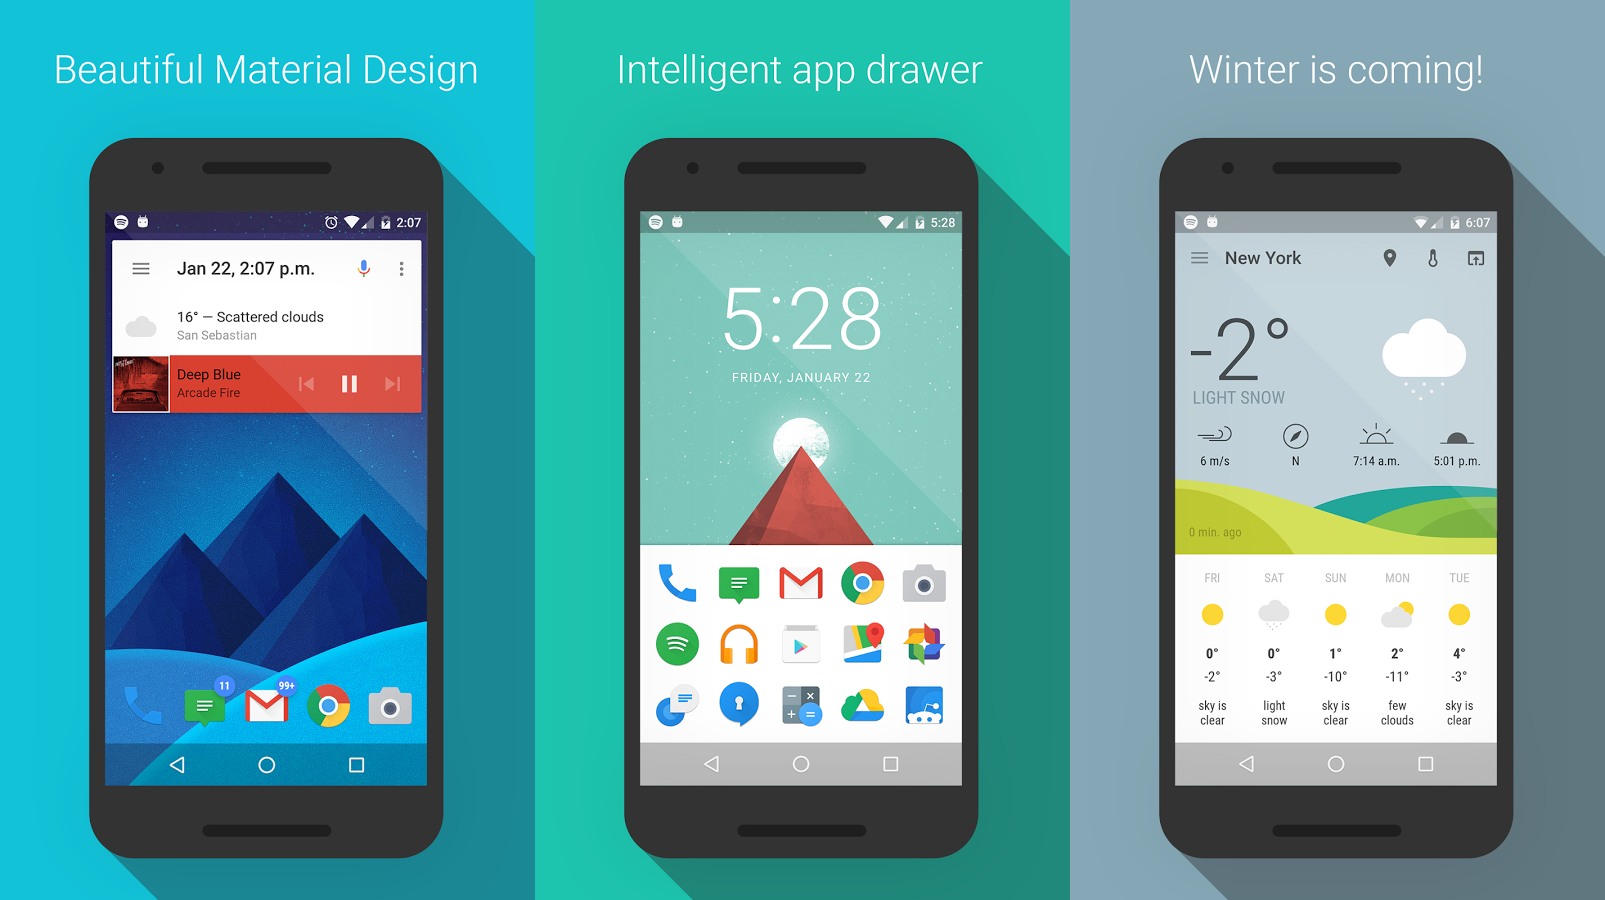 Download This: ASAP Launcher is a fast and material